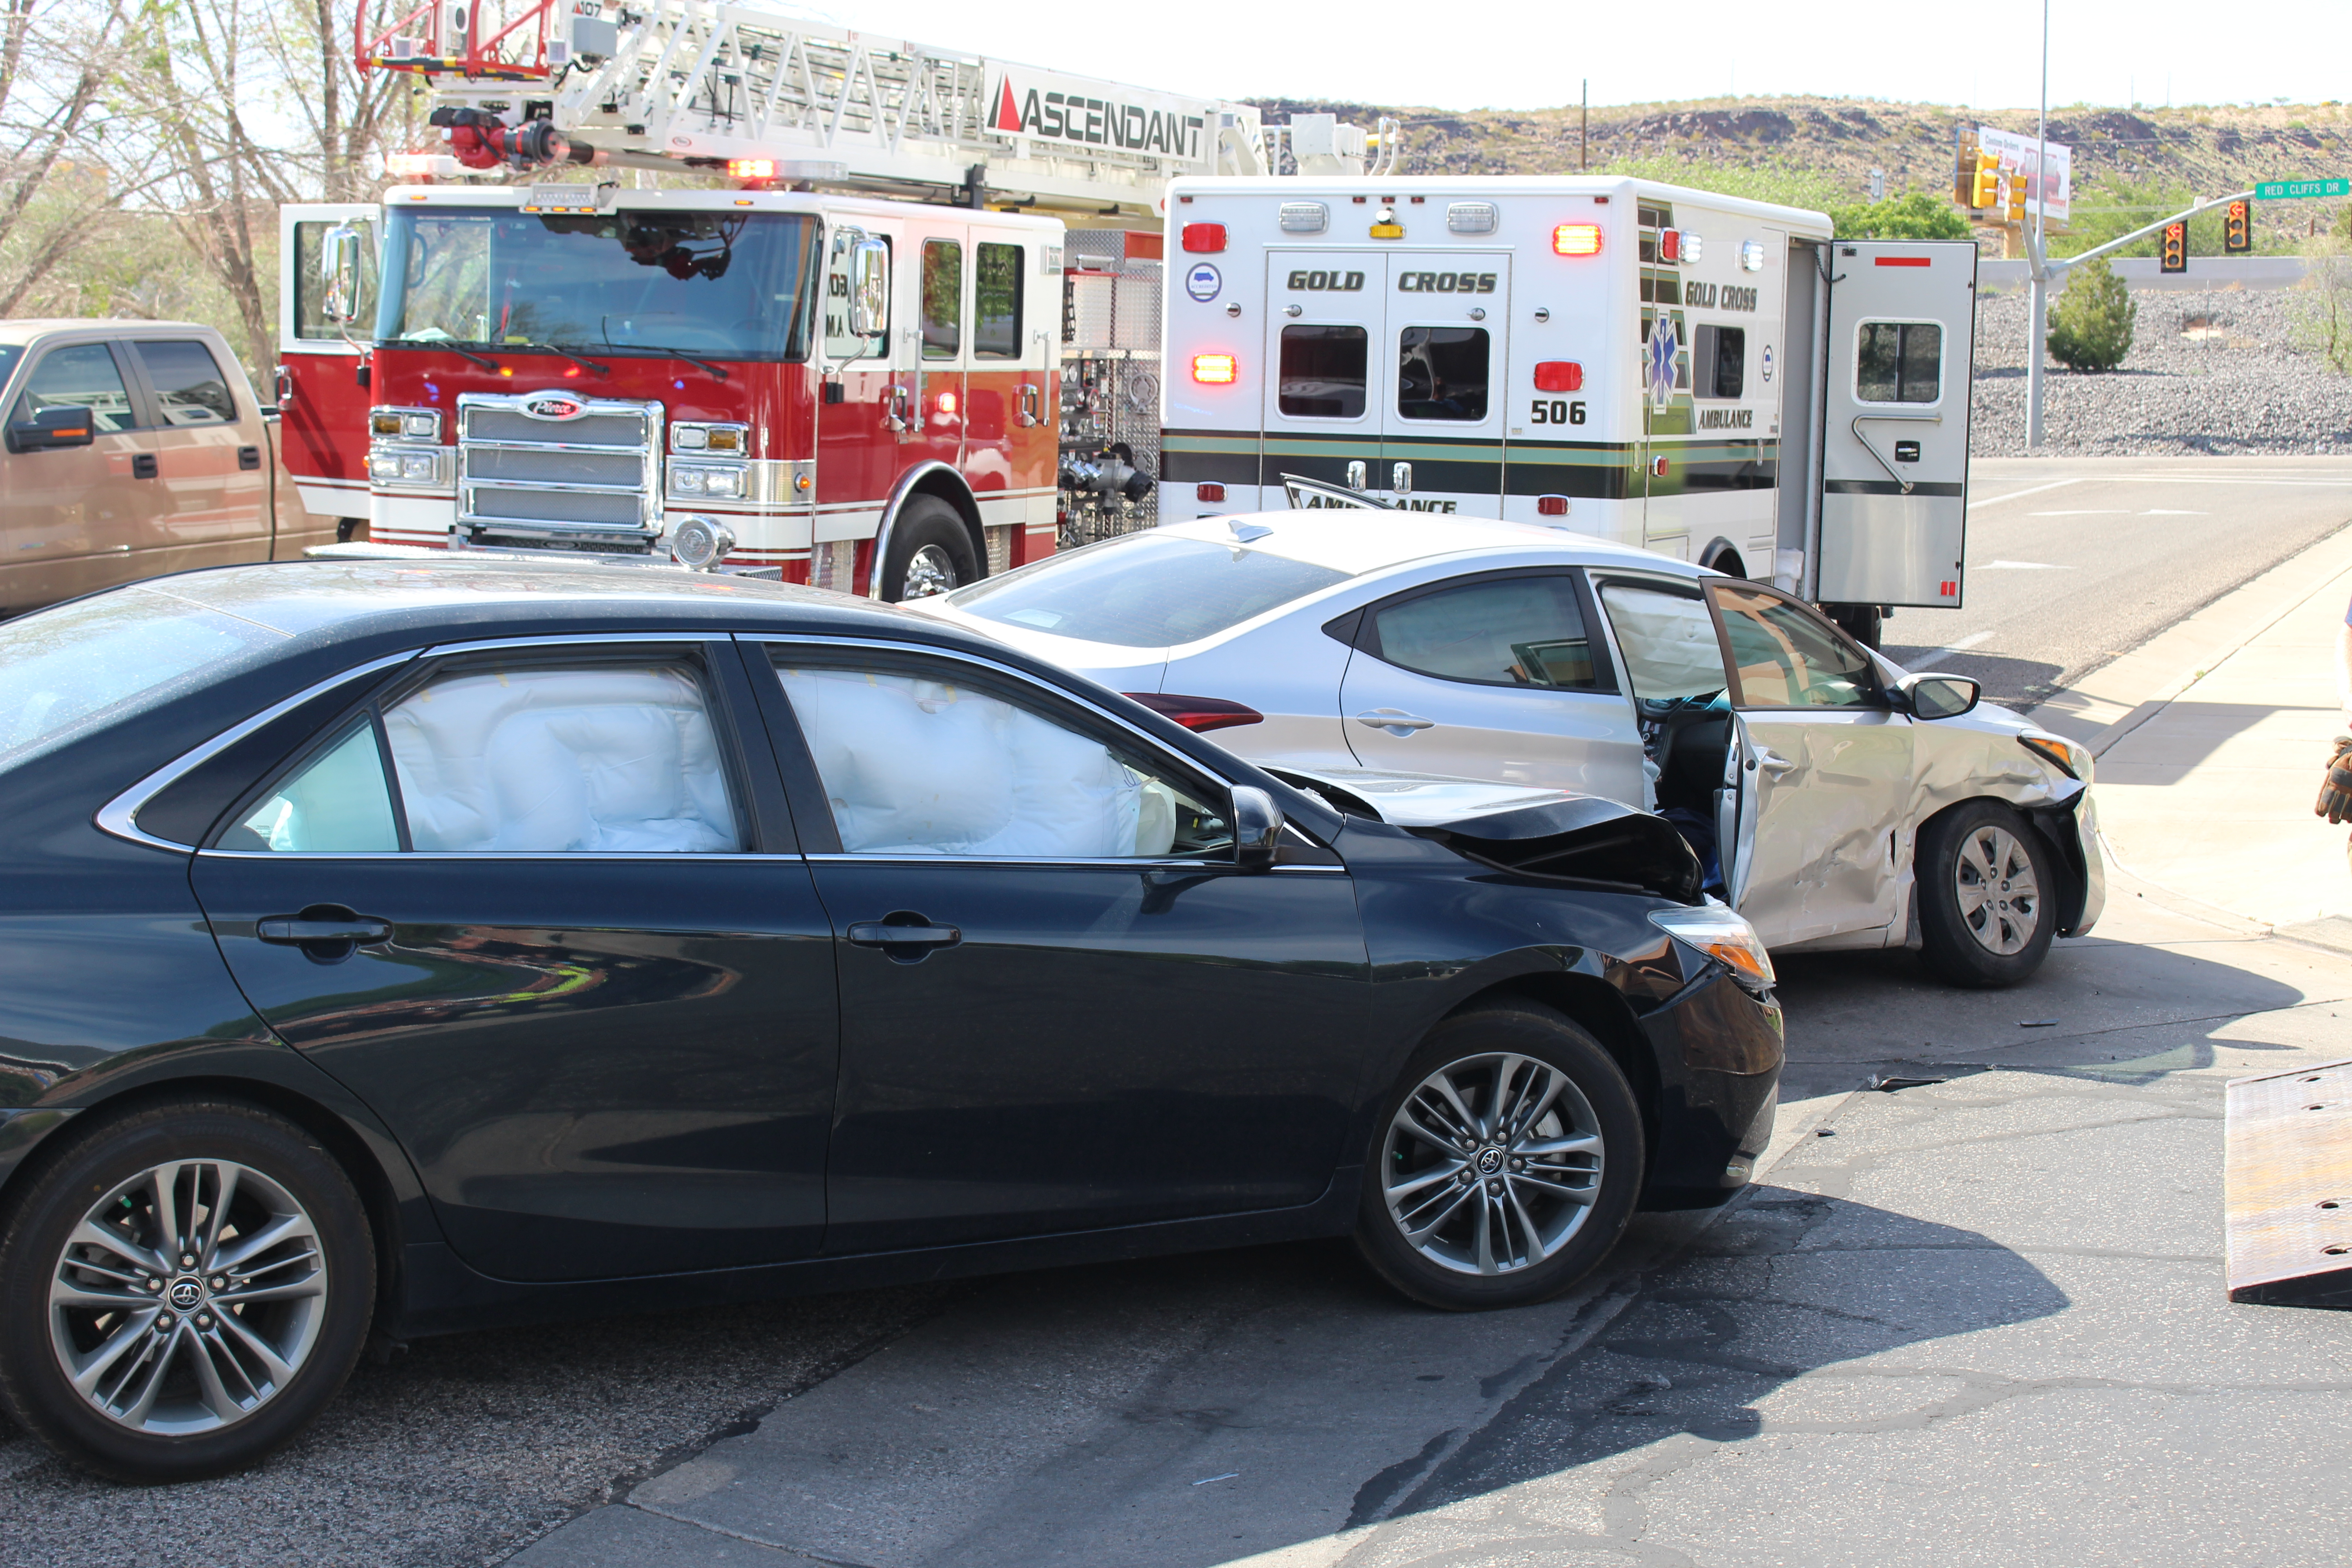 Injured Man Rushed To Hospital After Crash On Mall Drive St George